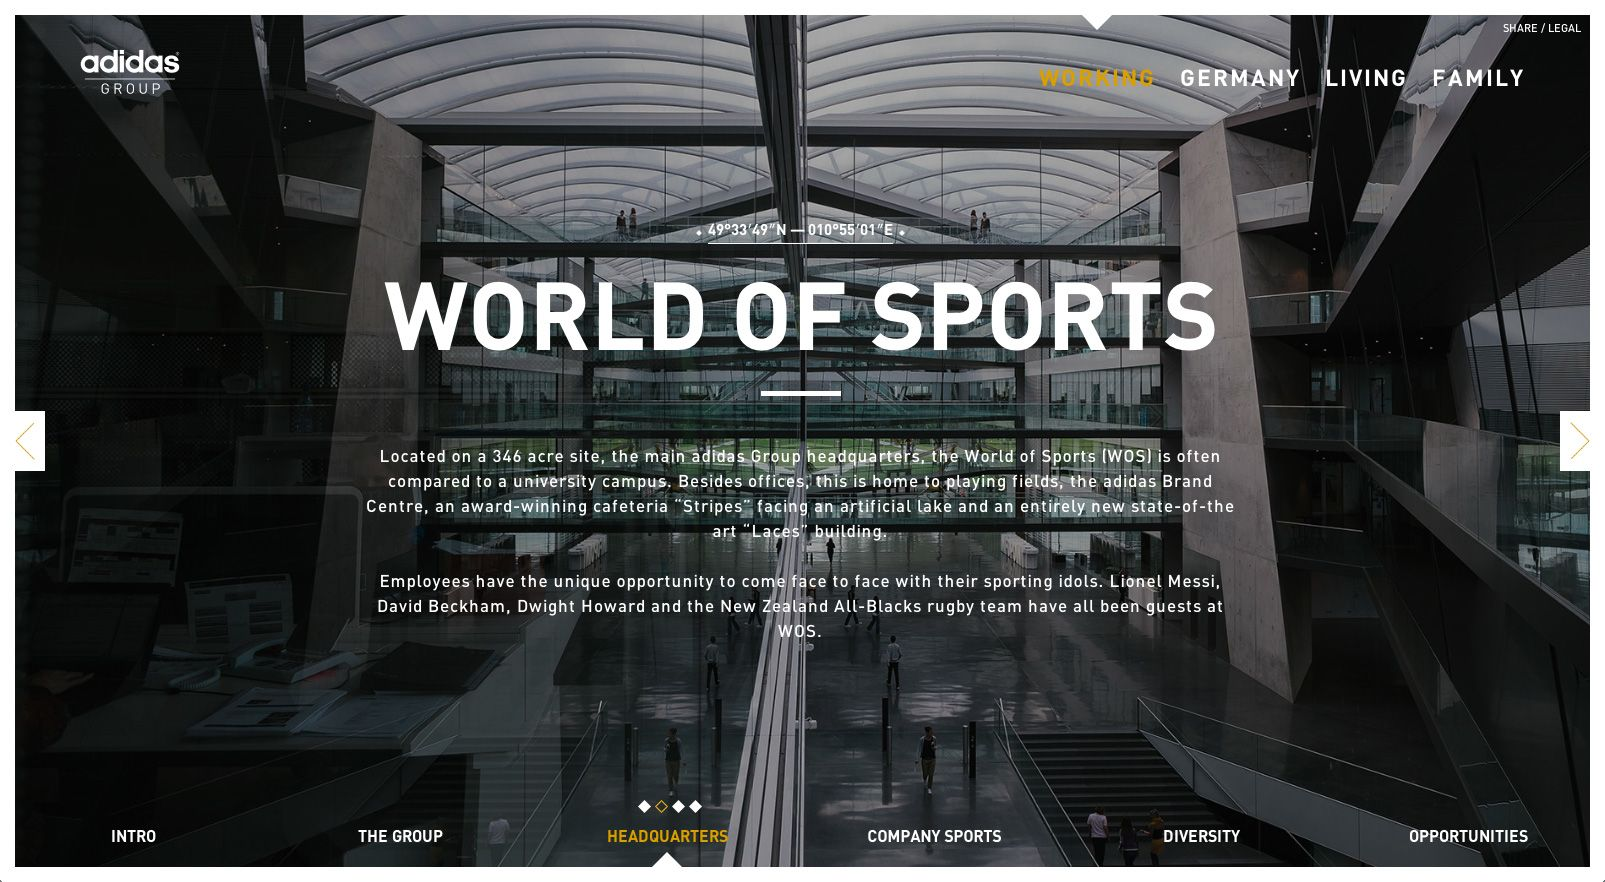 Adidas Group Hq In Herzogenaurach Germany Http Herzo Adidas Group Com With Images University Campus World Of Sports Iwo